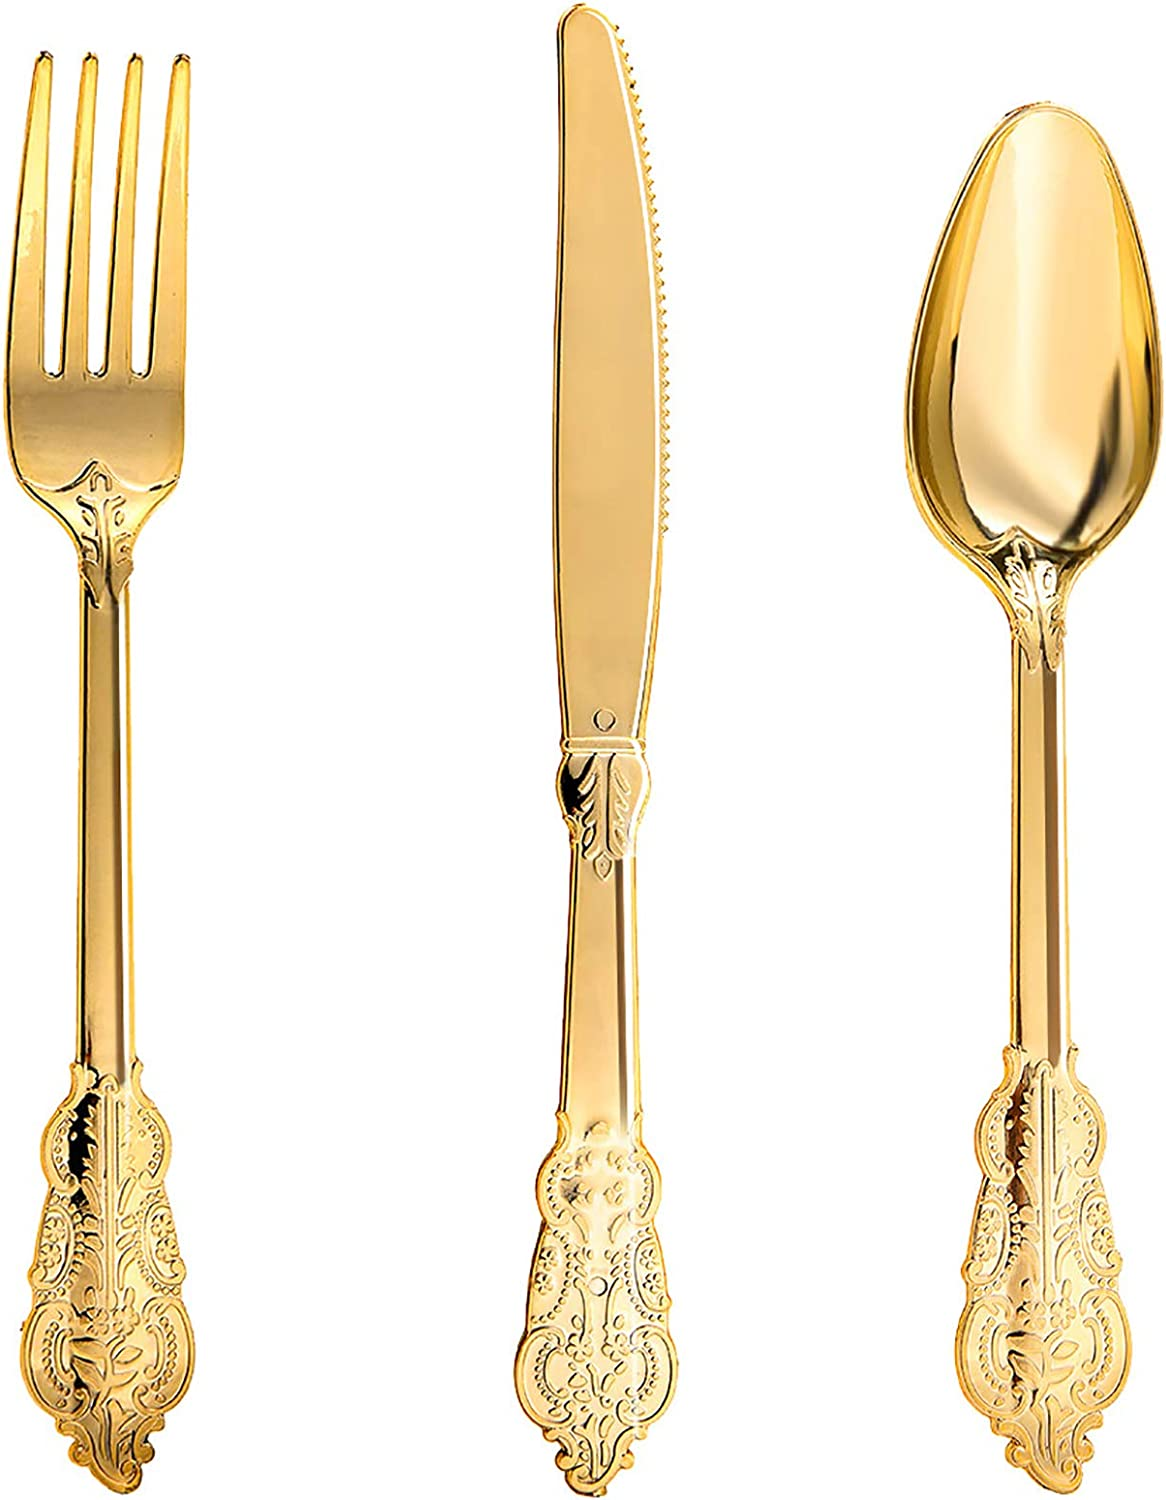 N9R 300pcs Gold Plastic Silverware Dinnerware Flatware- Heavyweight Gold Plastic Cutlery Set, 100 Gold Forks, 100 Gold Spoons, 100 Gold Knives, Gold Utensils for Party, Dinner Decor